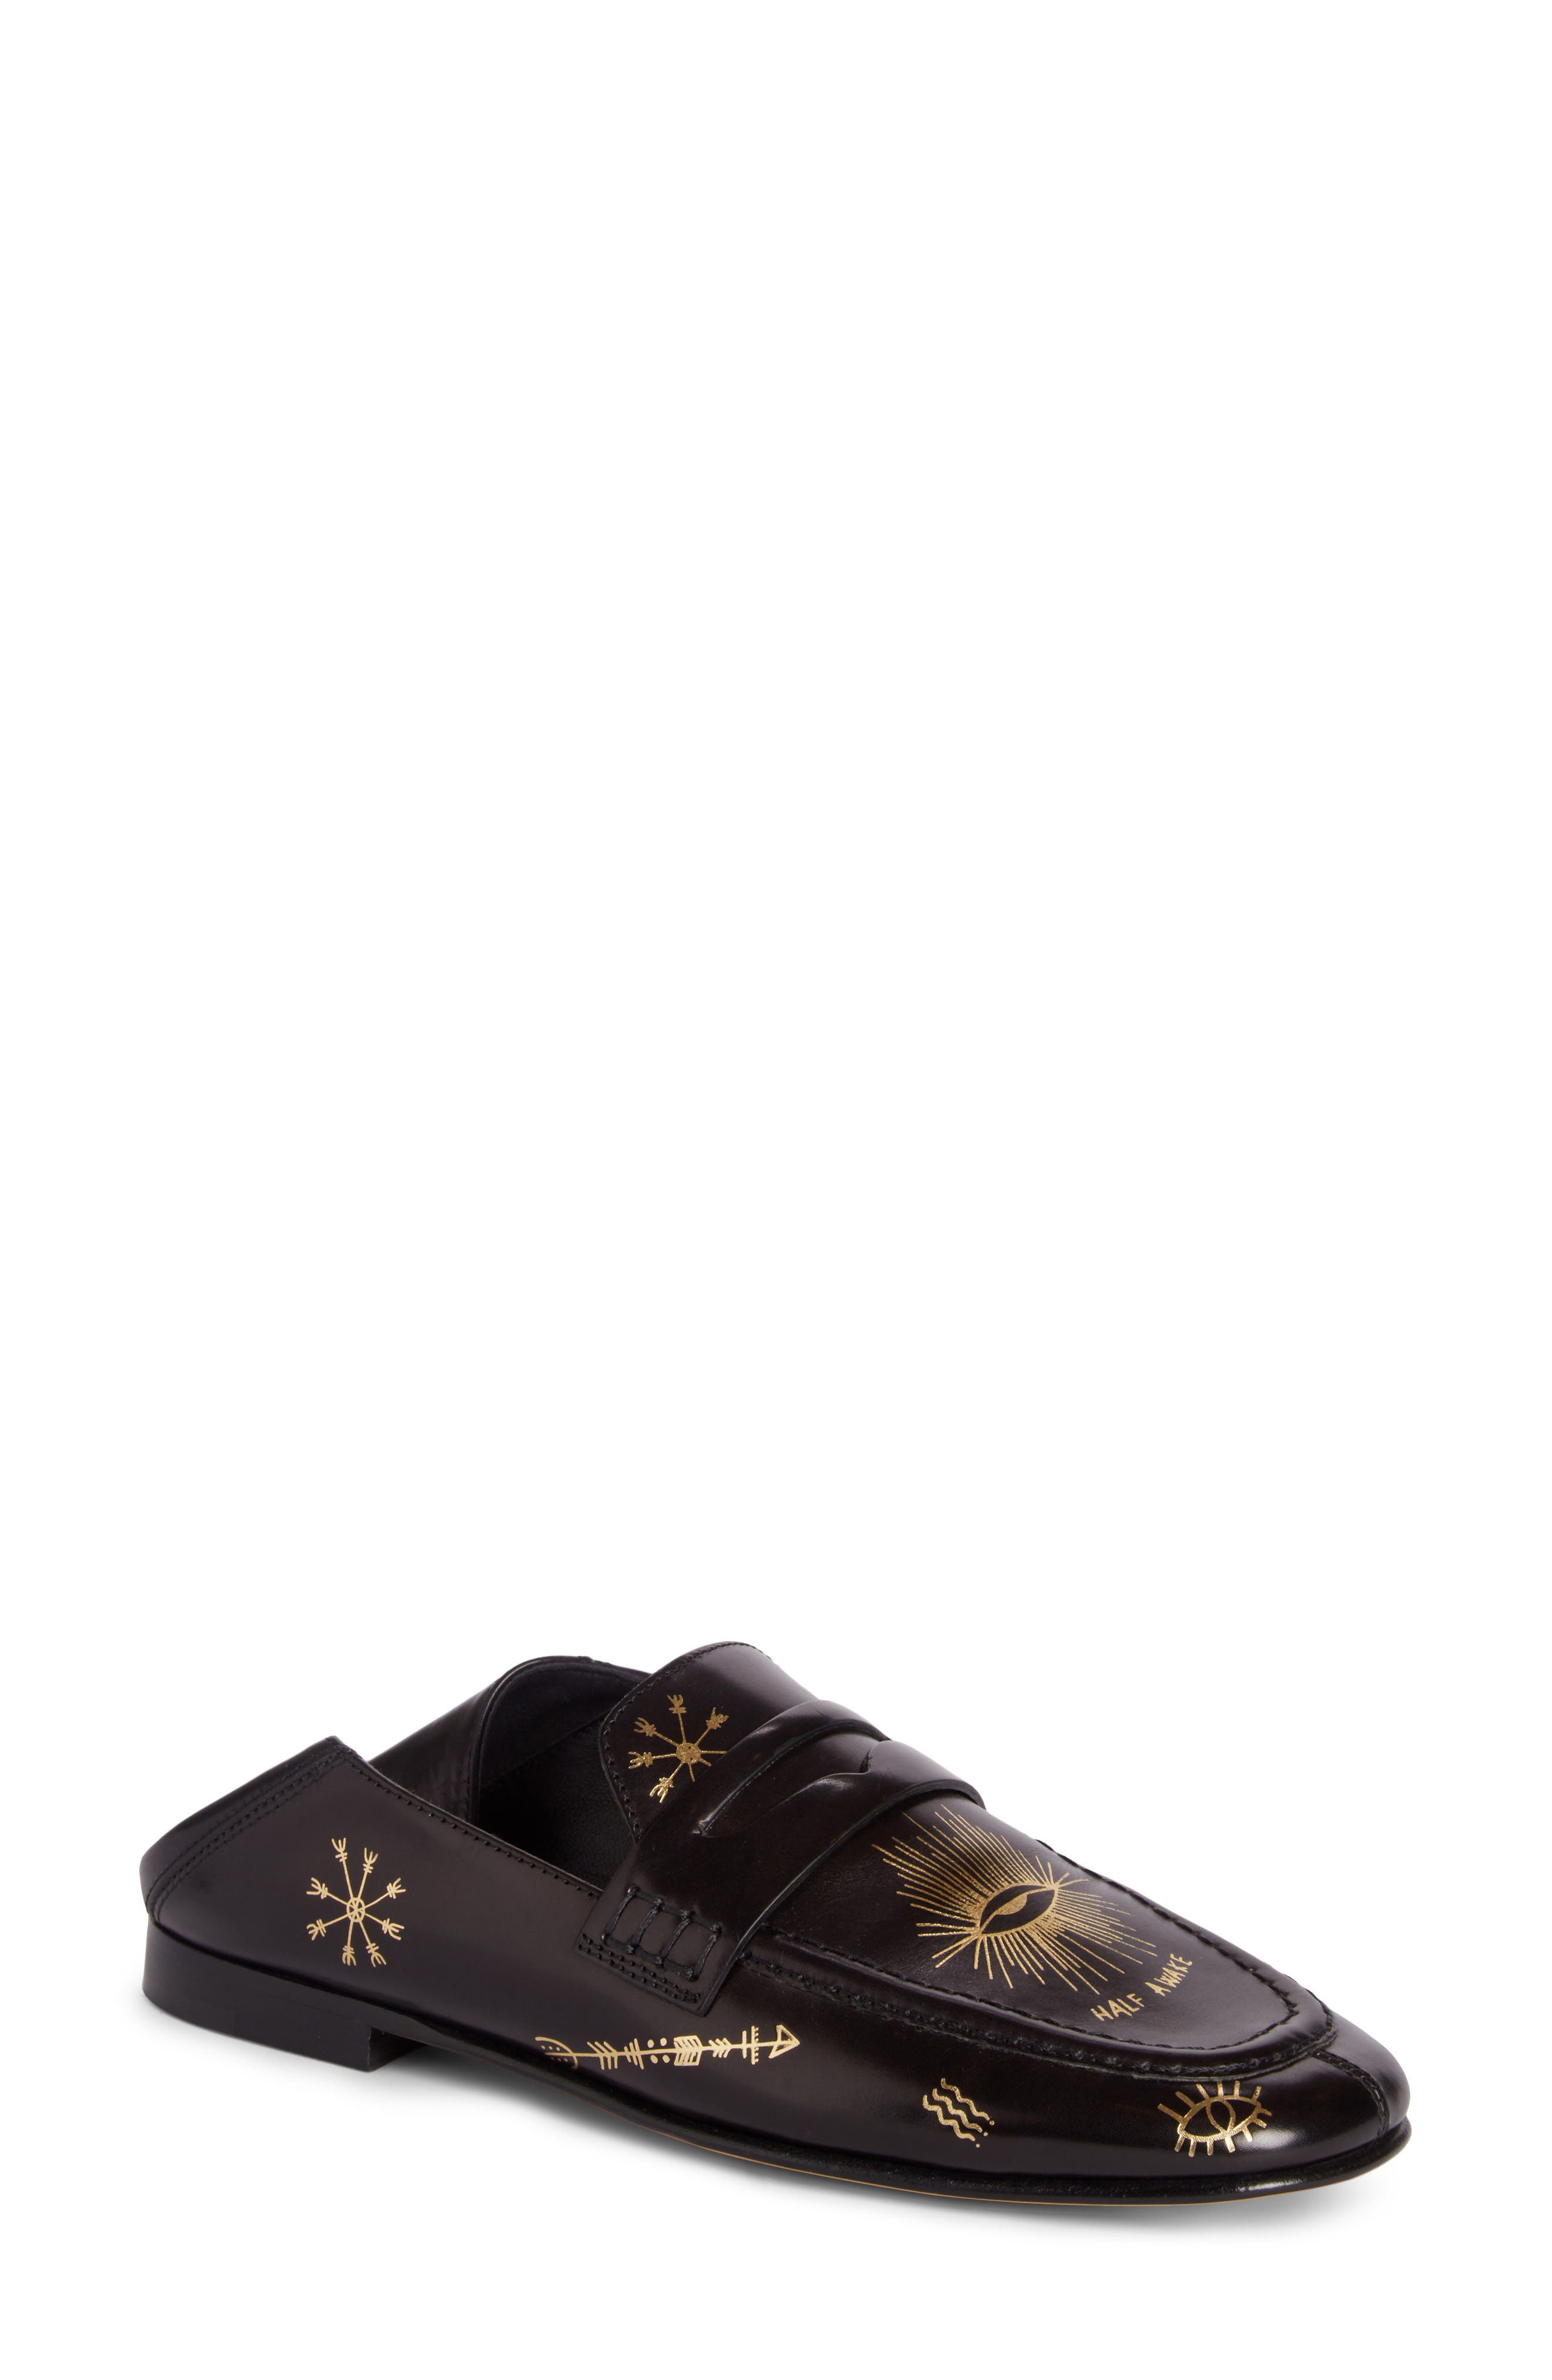 Main Image - Isabel Marant Fezzy Print Convertible Loafer (Women)